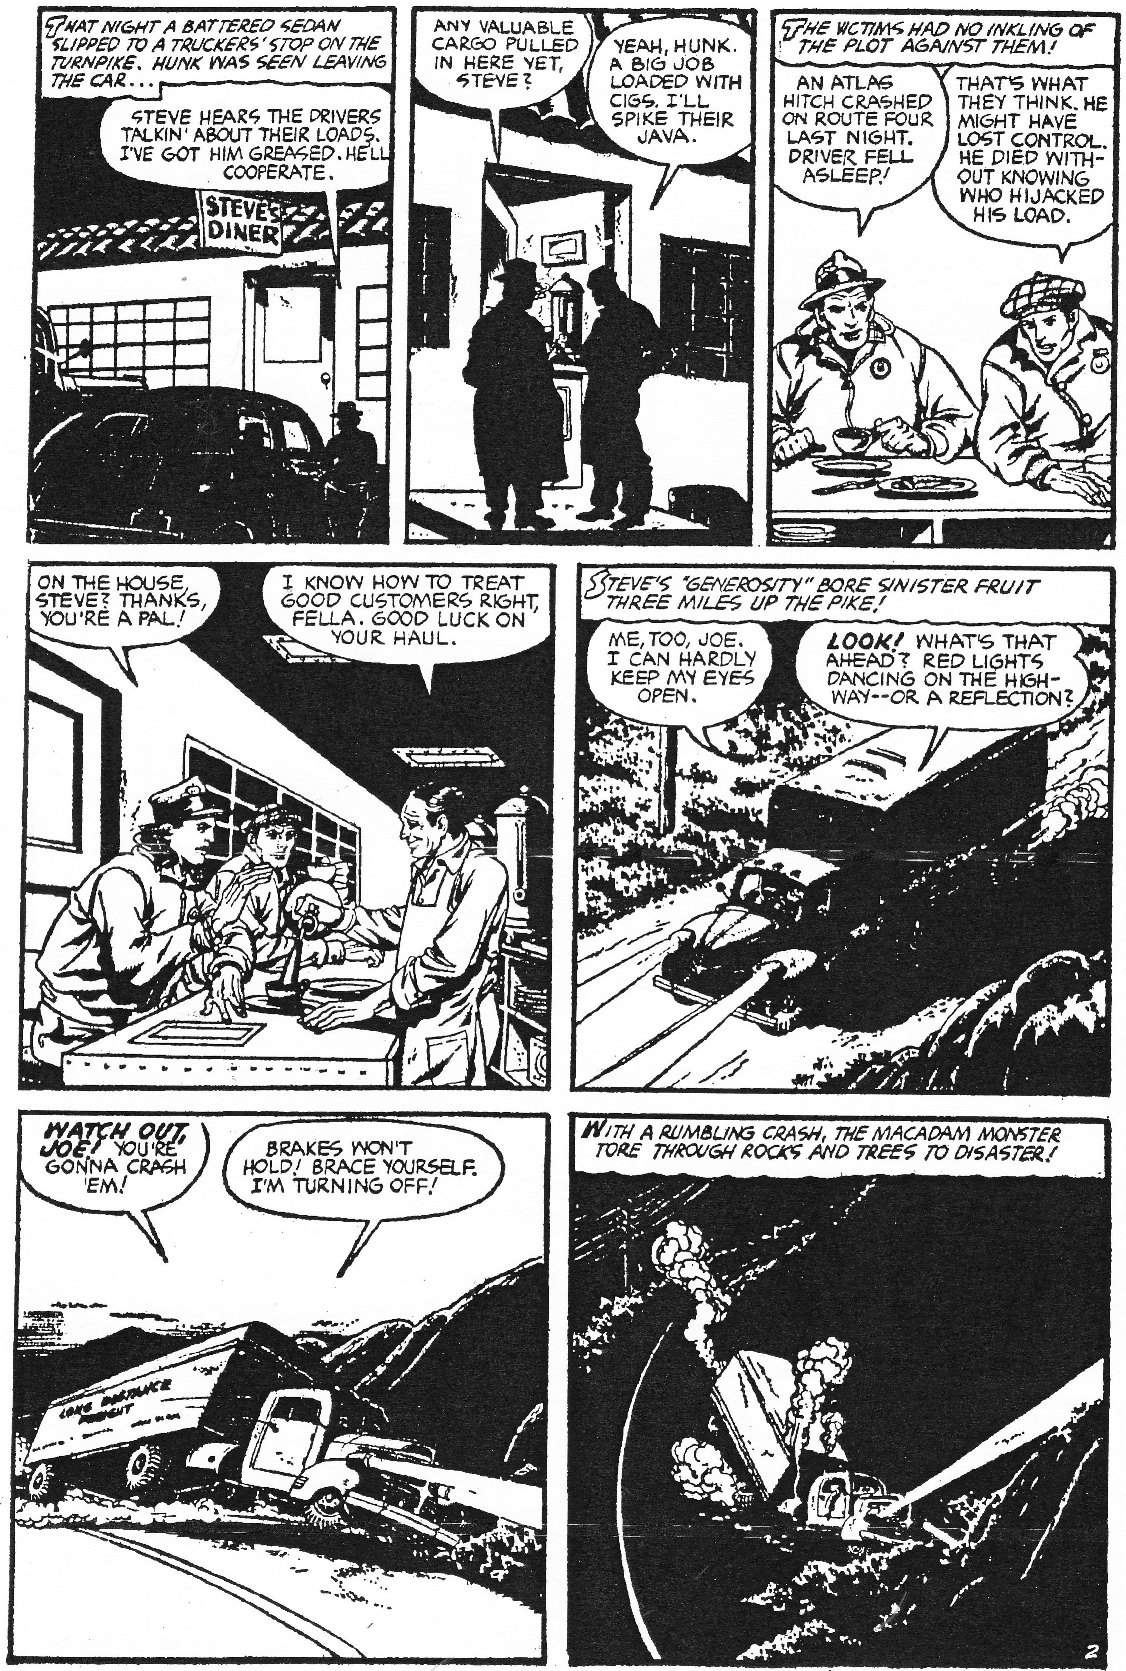 Read online Men of Mystery Comics comic -  Issue #74 - 38